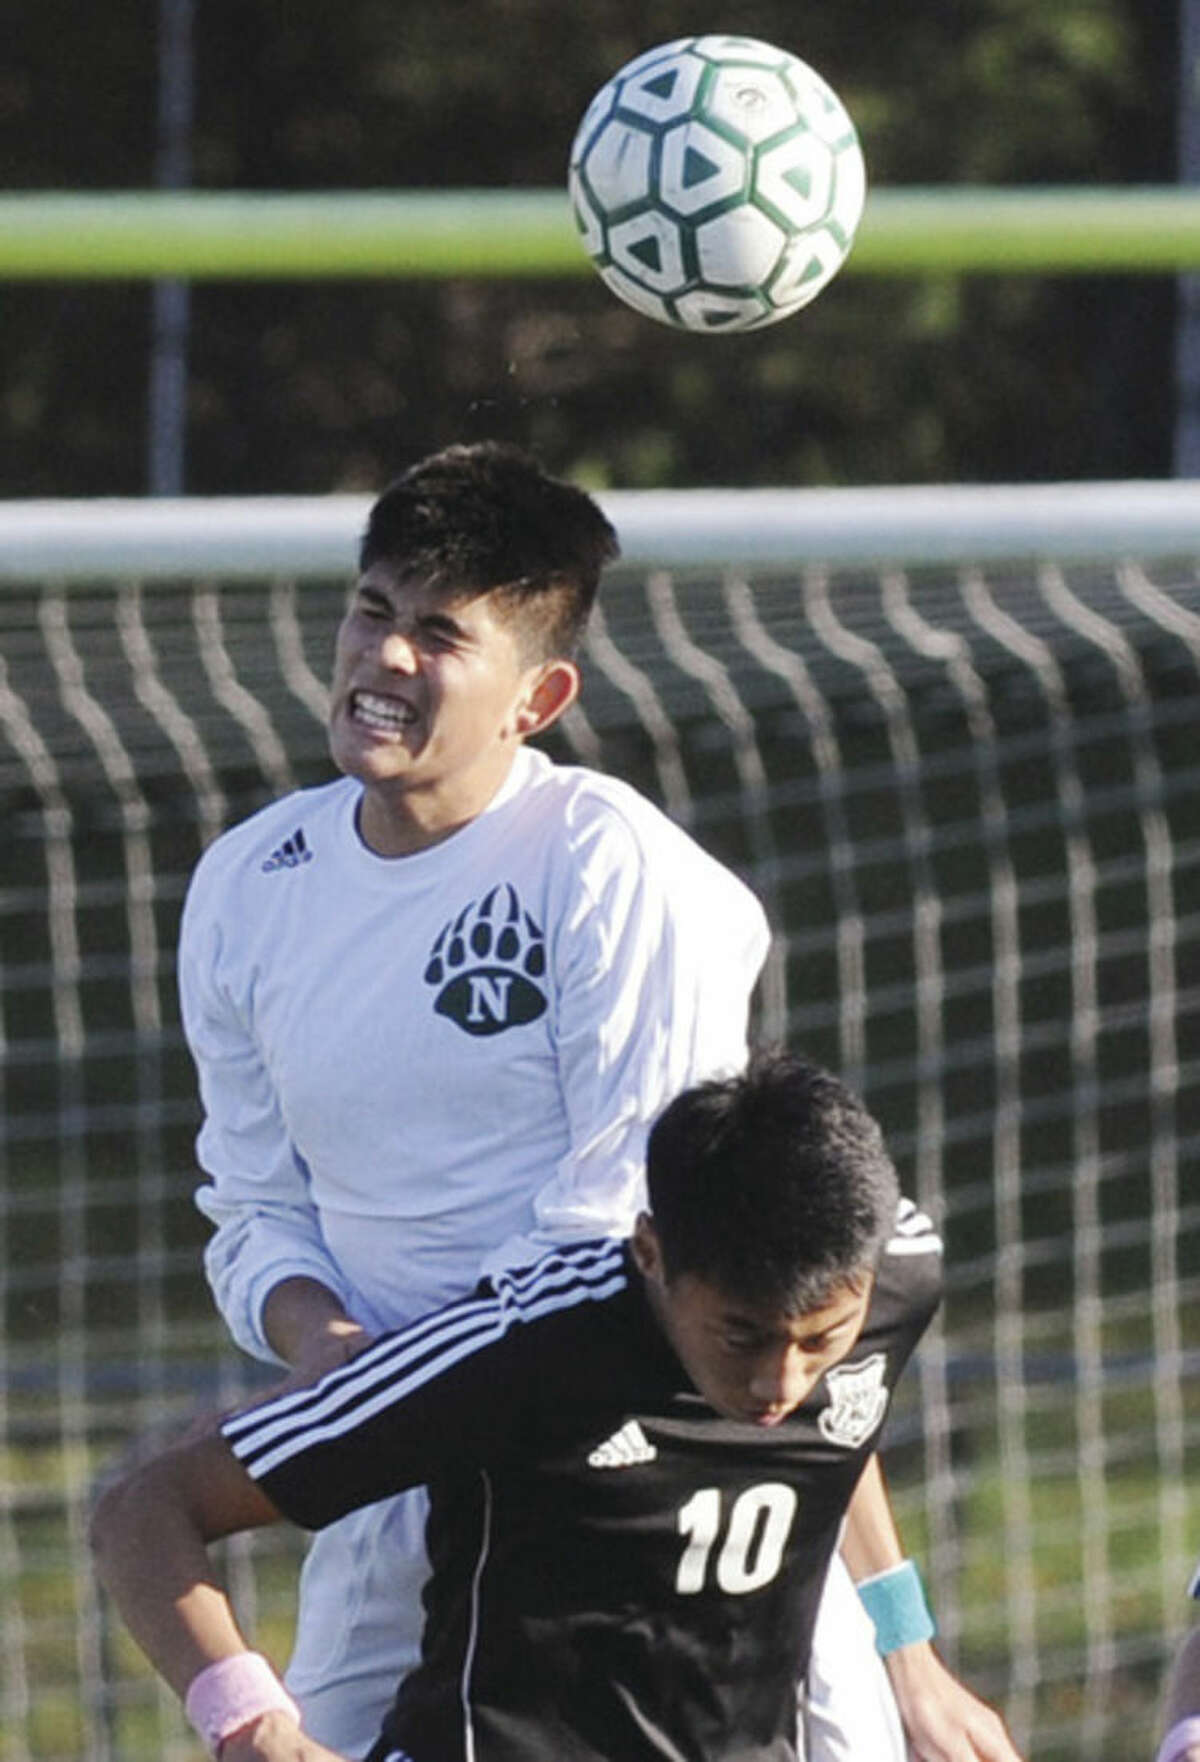 Hour photo/Matthew Vinci Norwalk's Alex Escalante jumps to head a b all over Trumbull's Thang Dao during Monday afternoon's Class LL state tournament game in Norwalk.